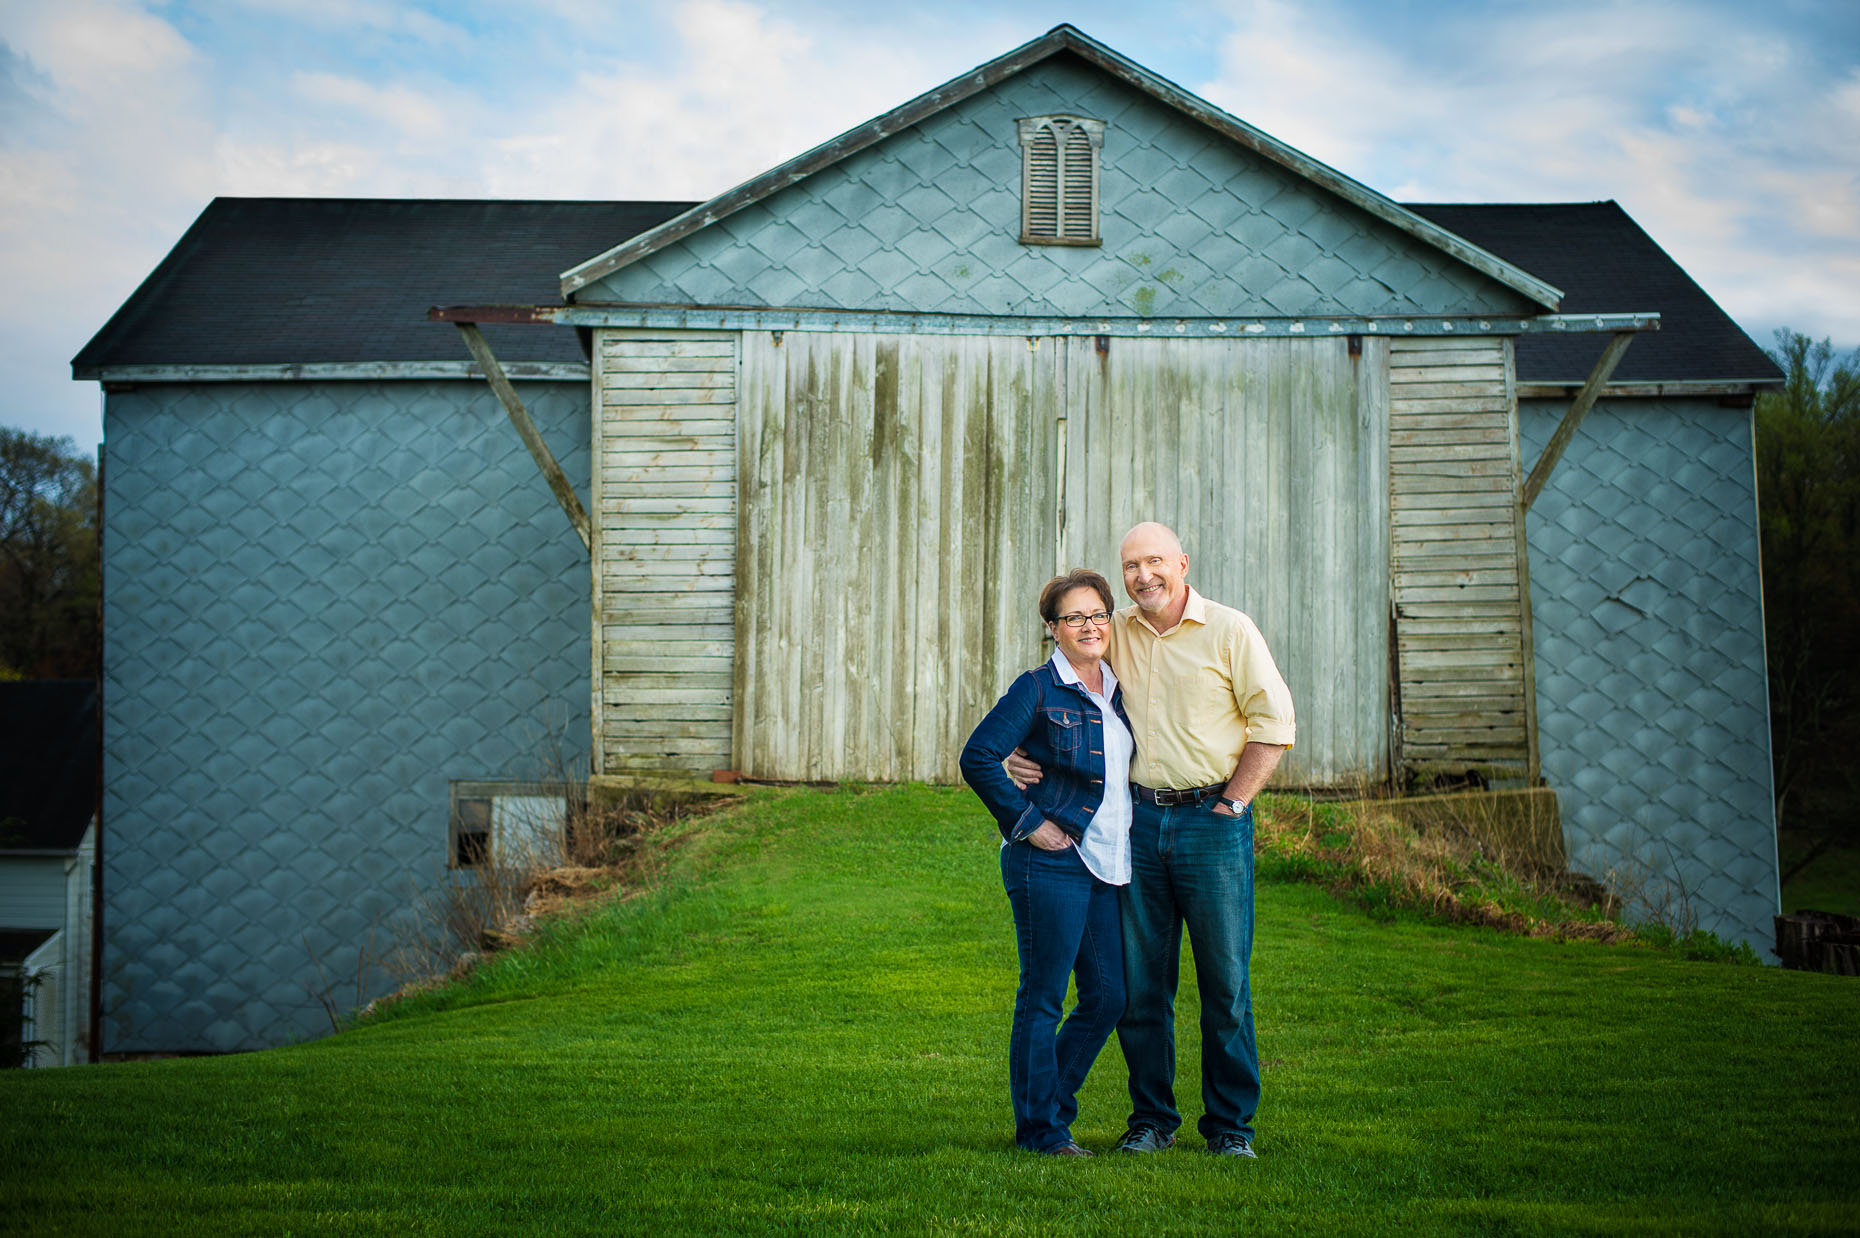 Rich and Edie Landis Barn | McMurry TMG editorial